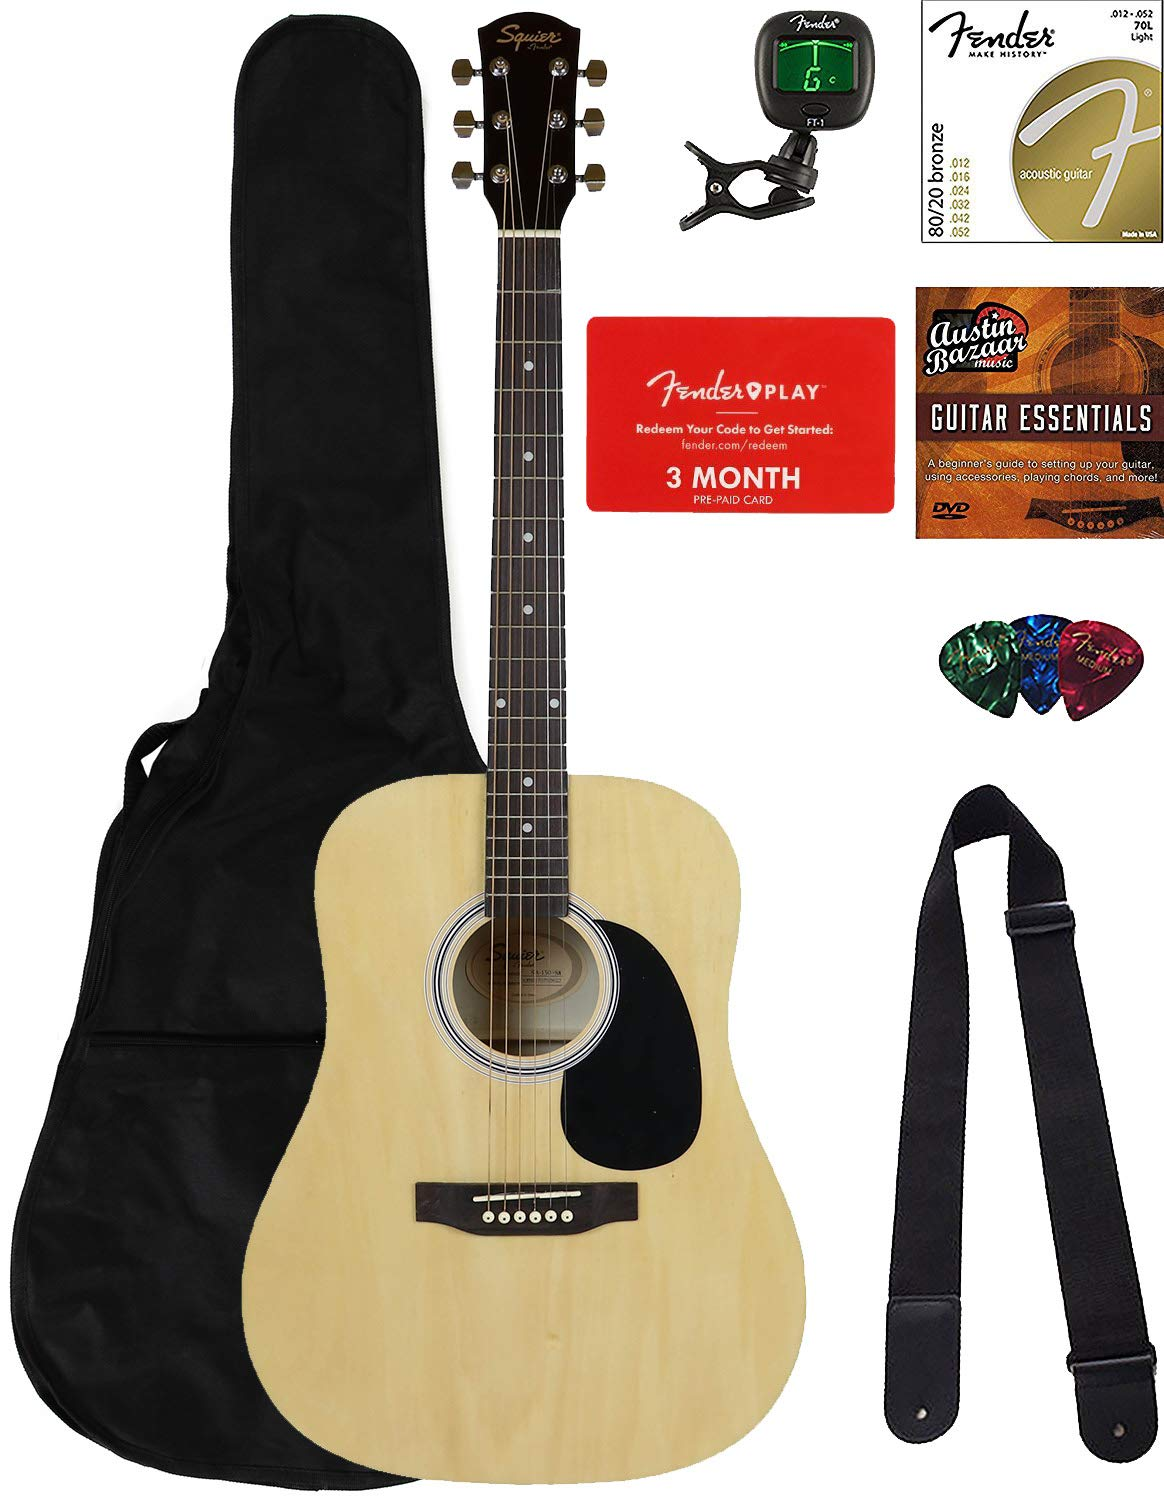 Fender Squier Dreadnought Acoustic Guitar - Natural Bundle with Fender Play Online Lessons, Gig Bag, Tuner, Strings, Strap, Picks, and Austin Bazaar Instructional DVD by Fender